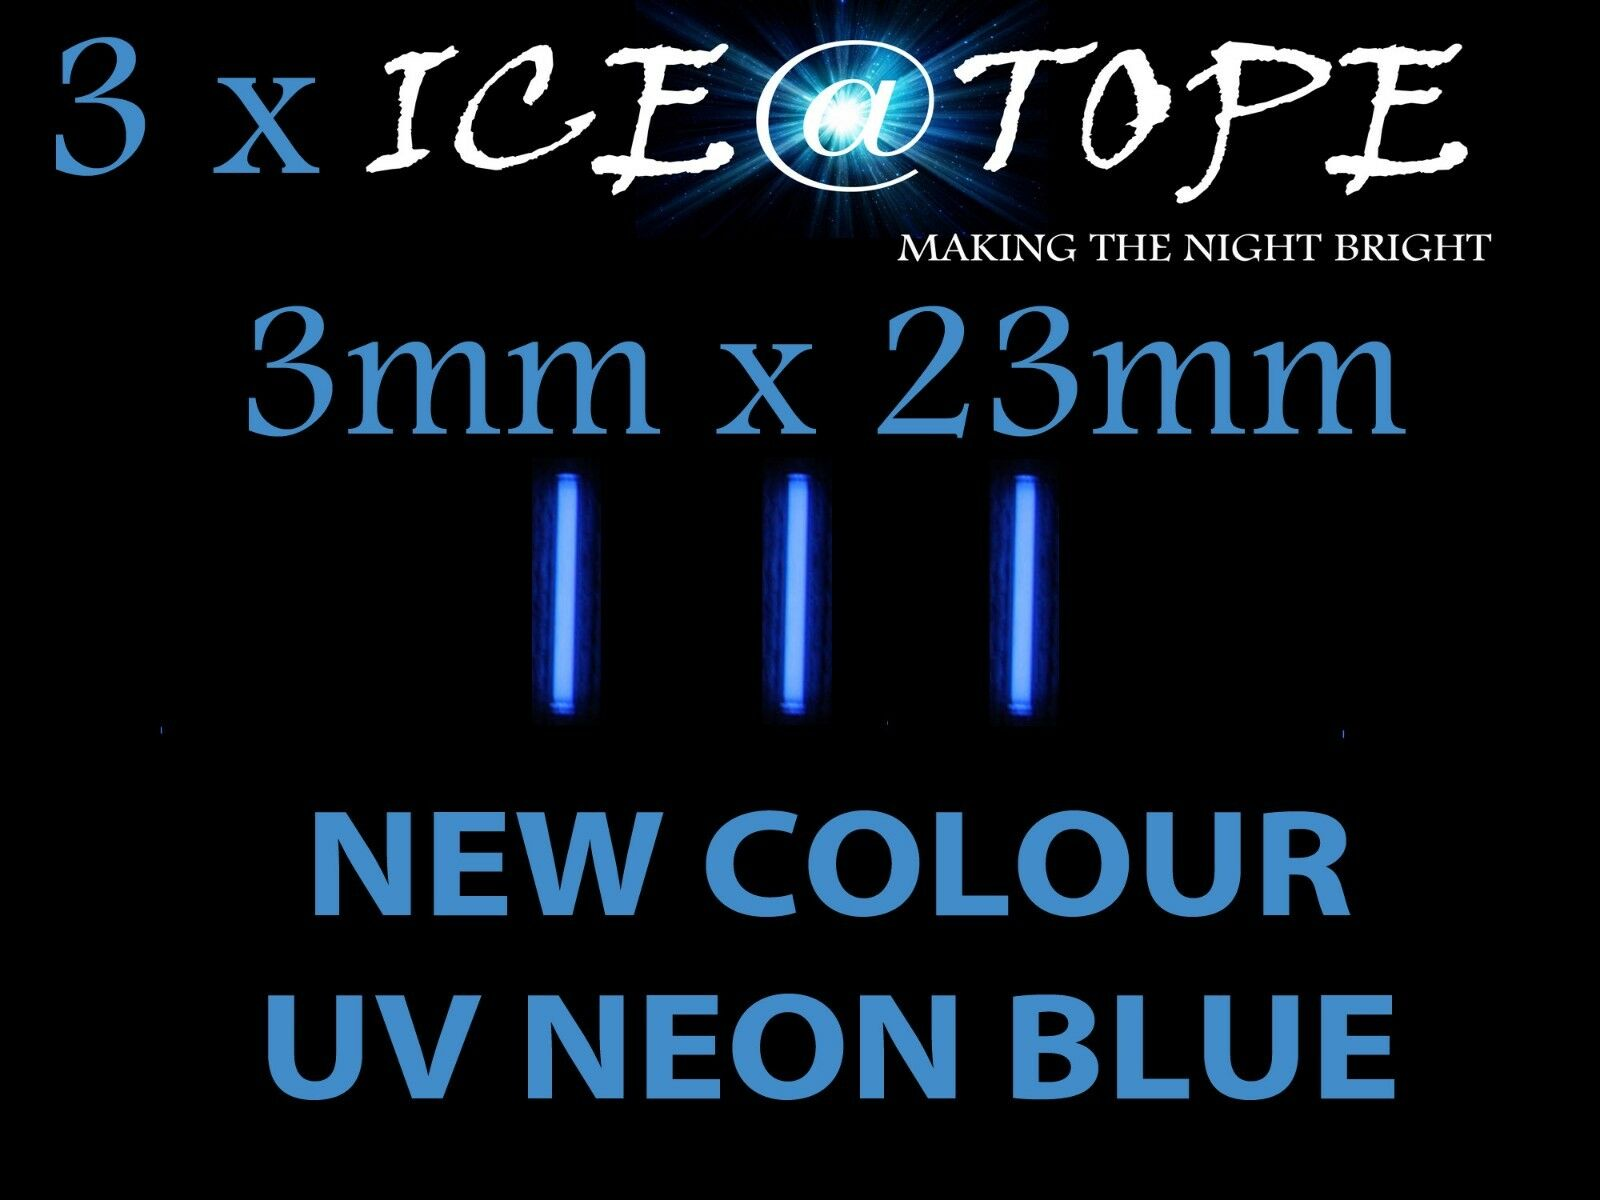 3 X ICE UV NEON blueE ICE@TOPE Carp  Fishing 3mm X 23mm FULL MAX POWER isotopes  sale online discount low price